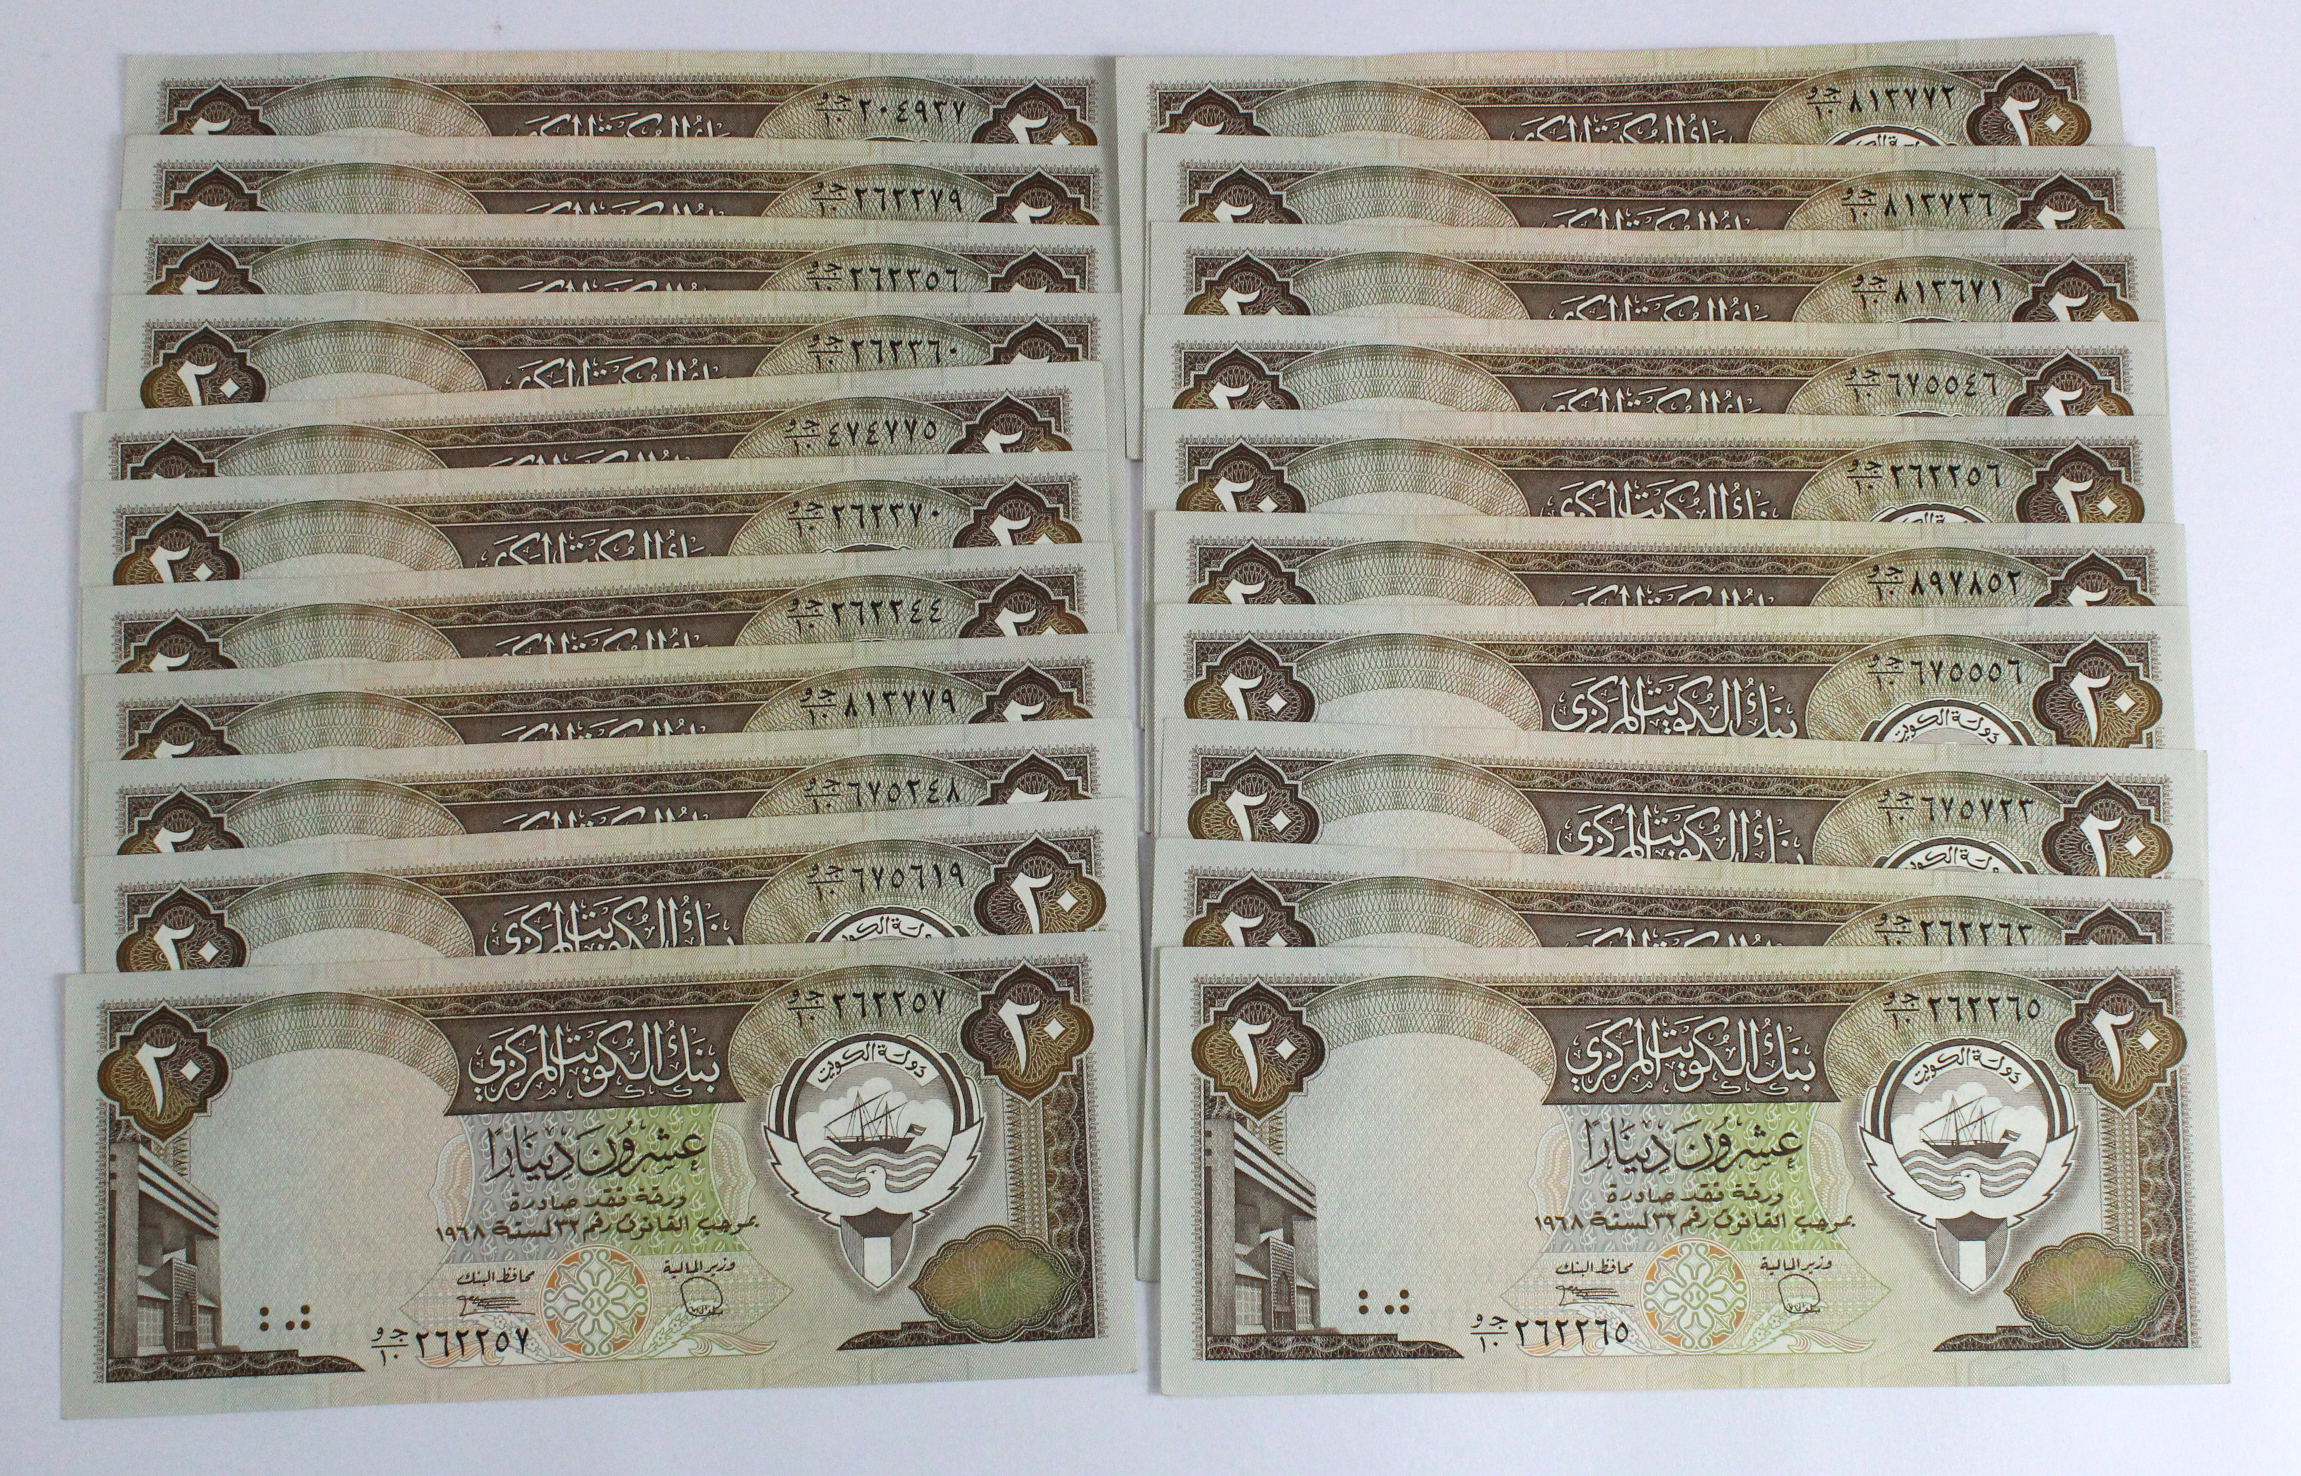 Kuwait 20 Dinars (21) issued 1986 - 1991 (Law 1968), a group of pre Gulf War issues which were